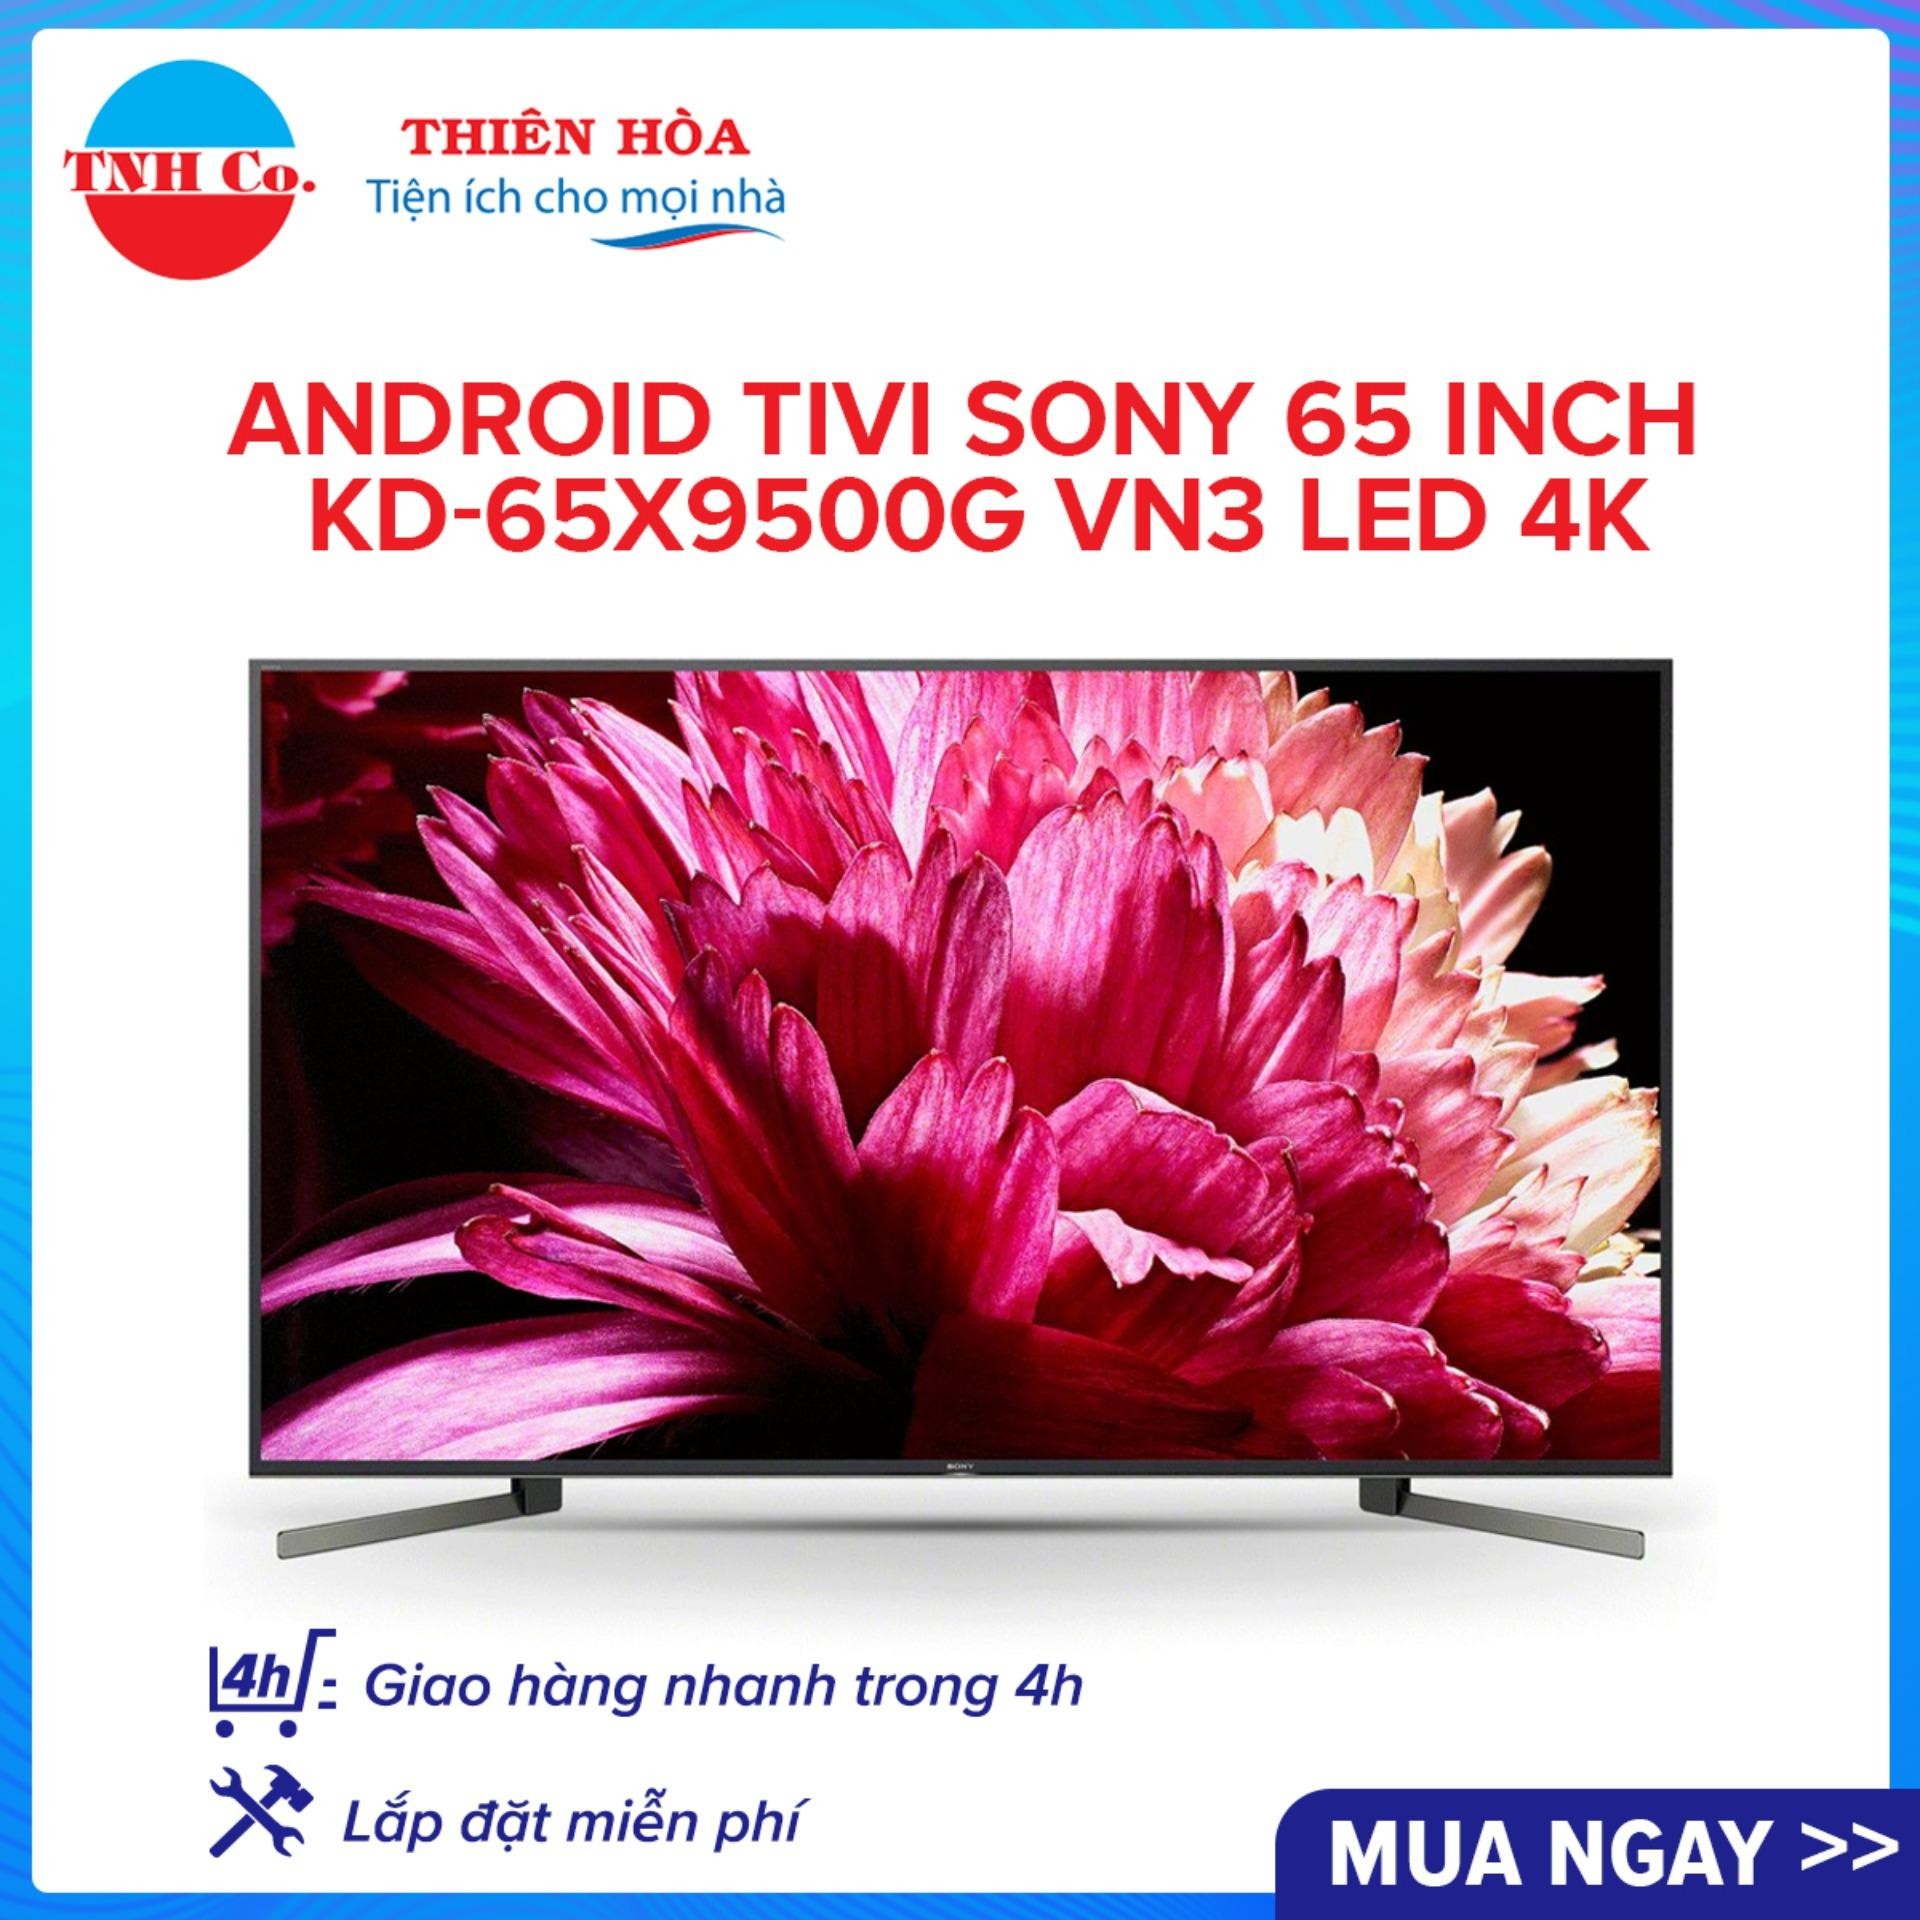 Bảng giá Android Tivi SONY 65 Inch KD-65X9500G VN3 LED 4K